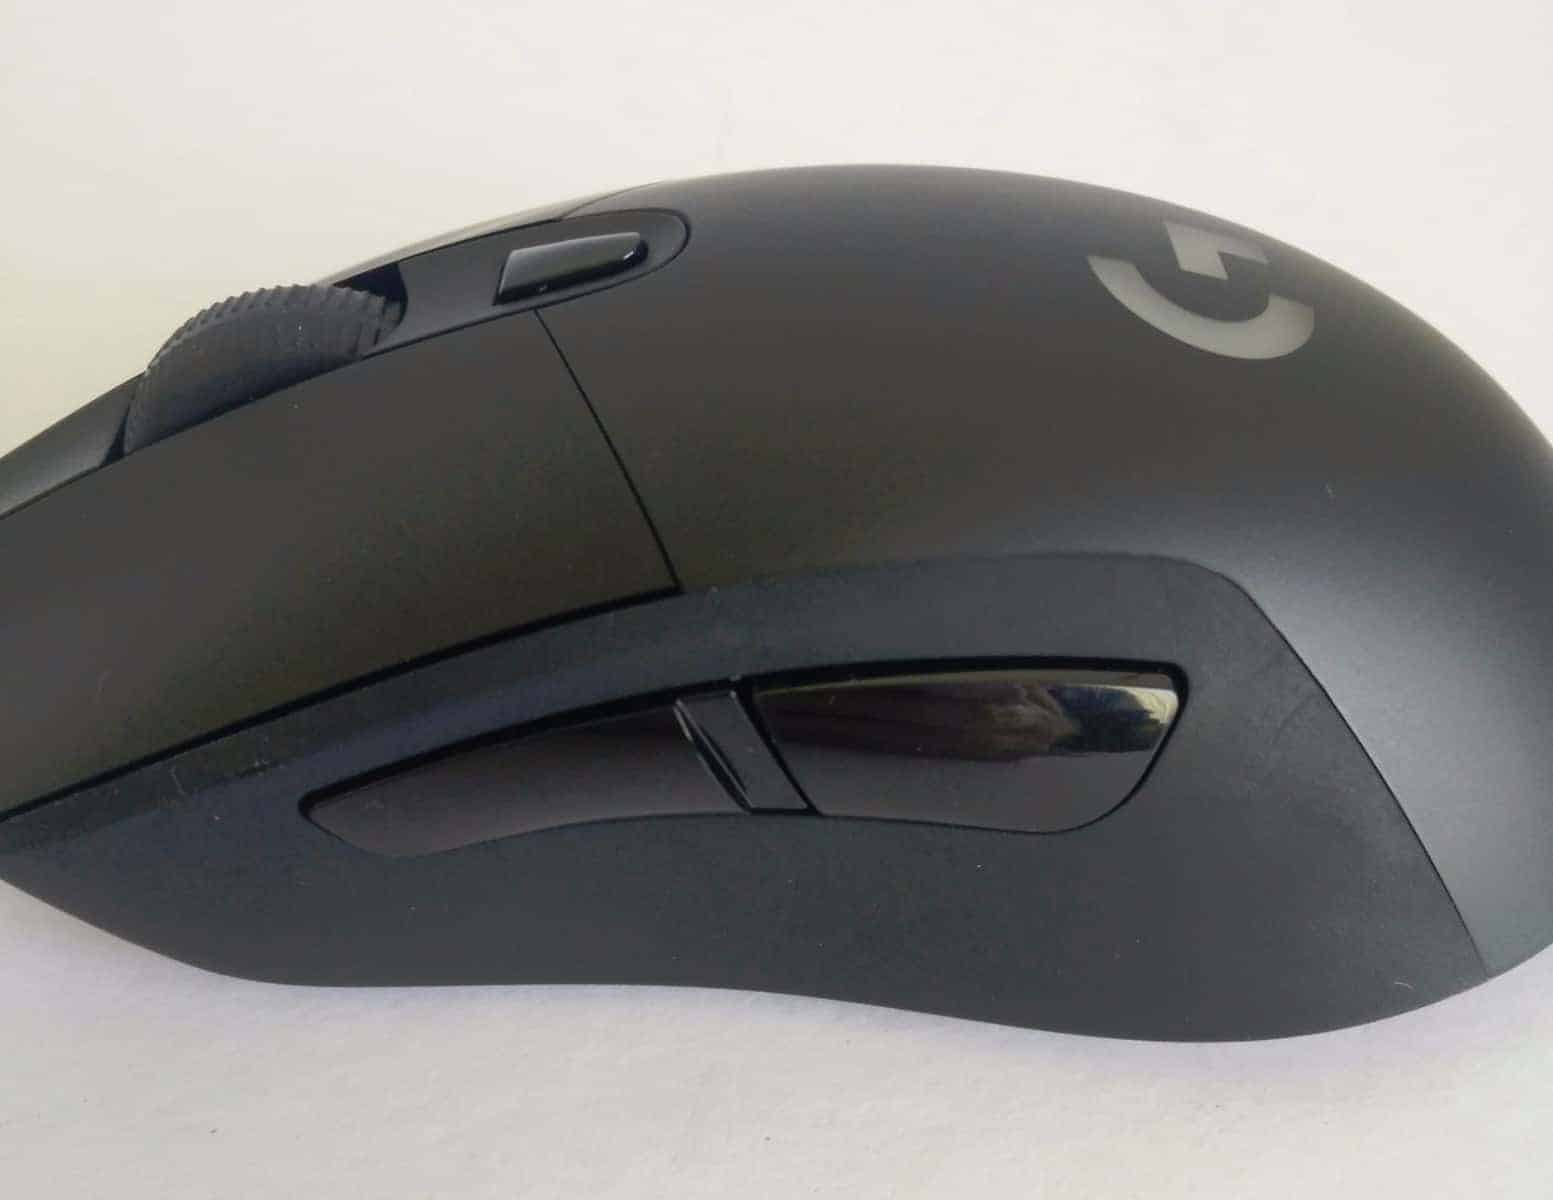 logitech-g403-photos-08